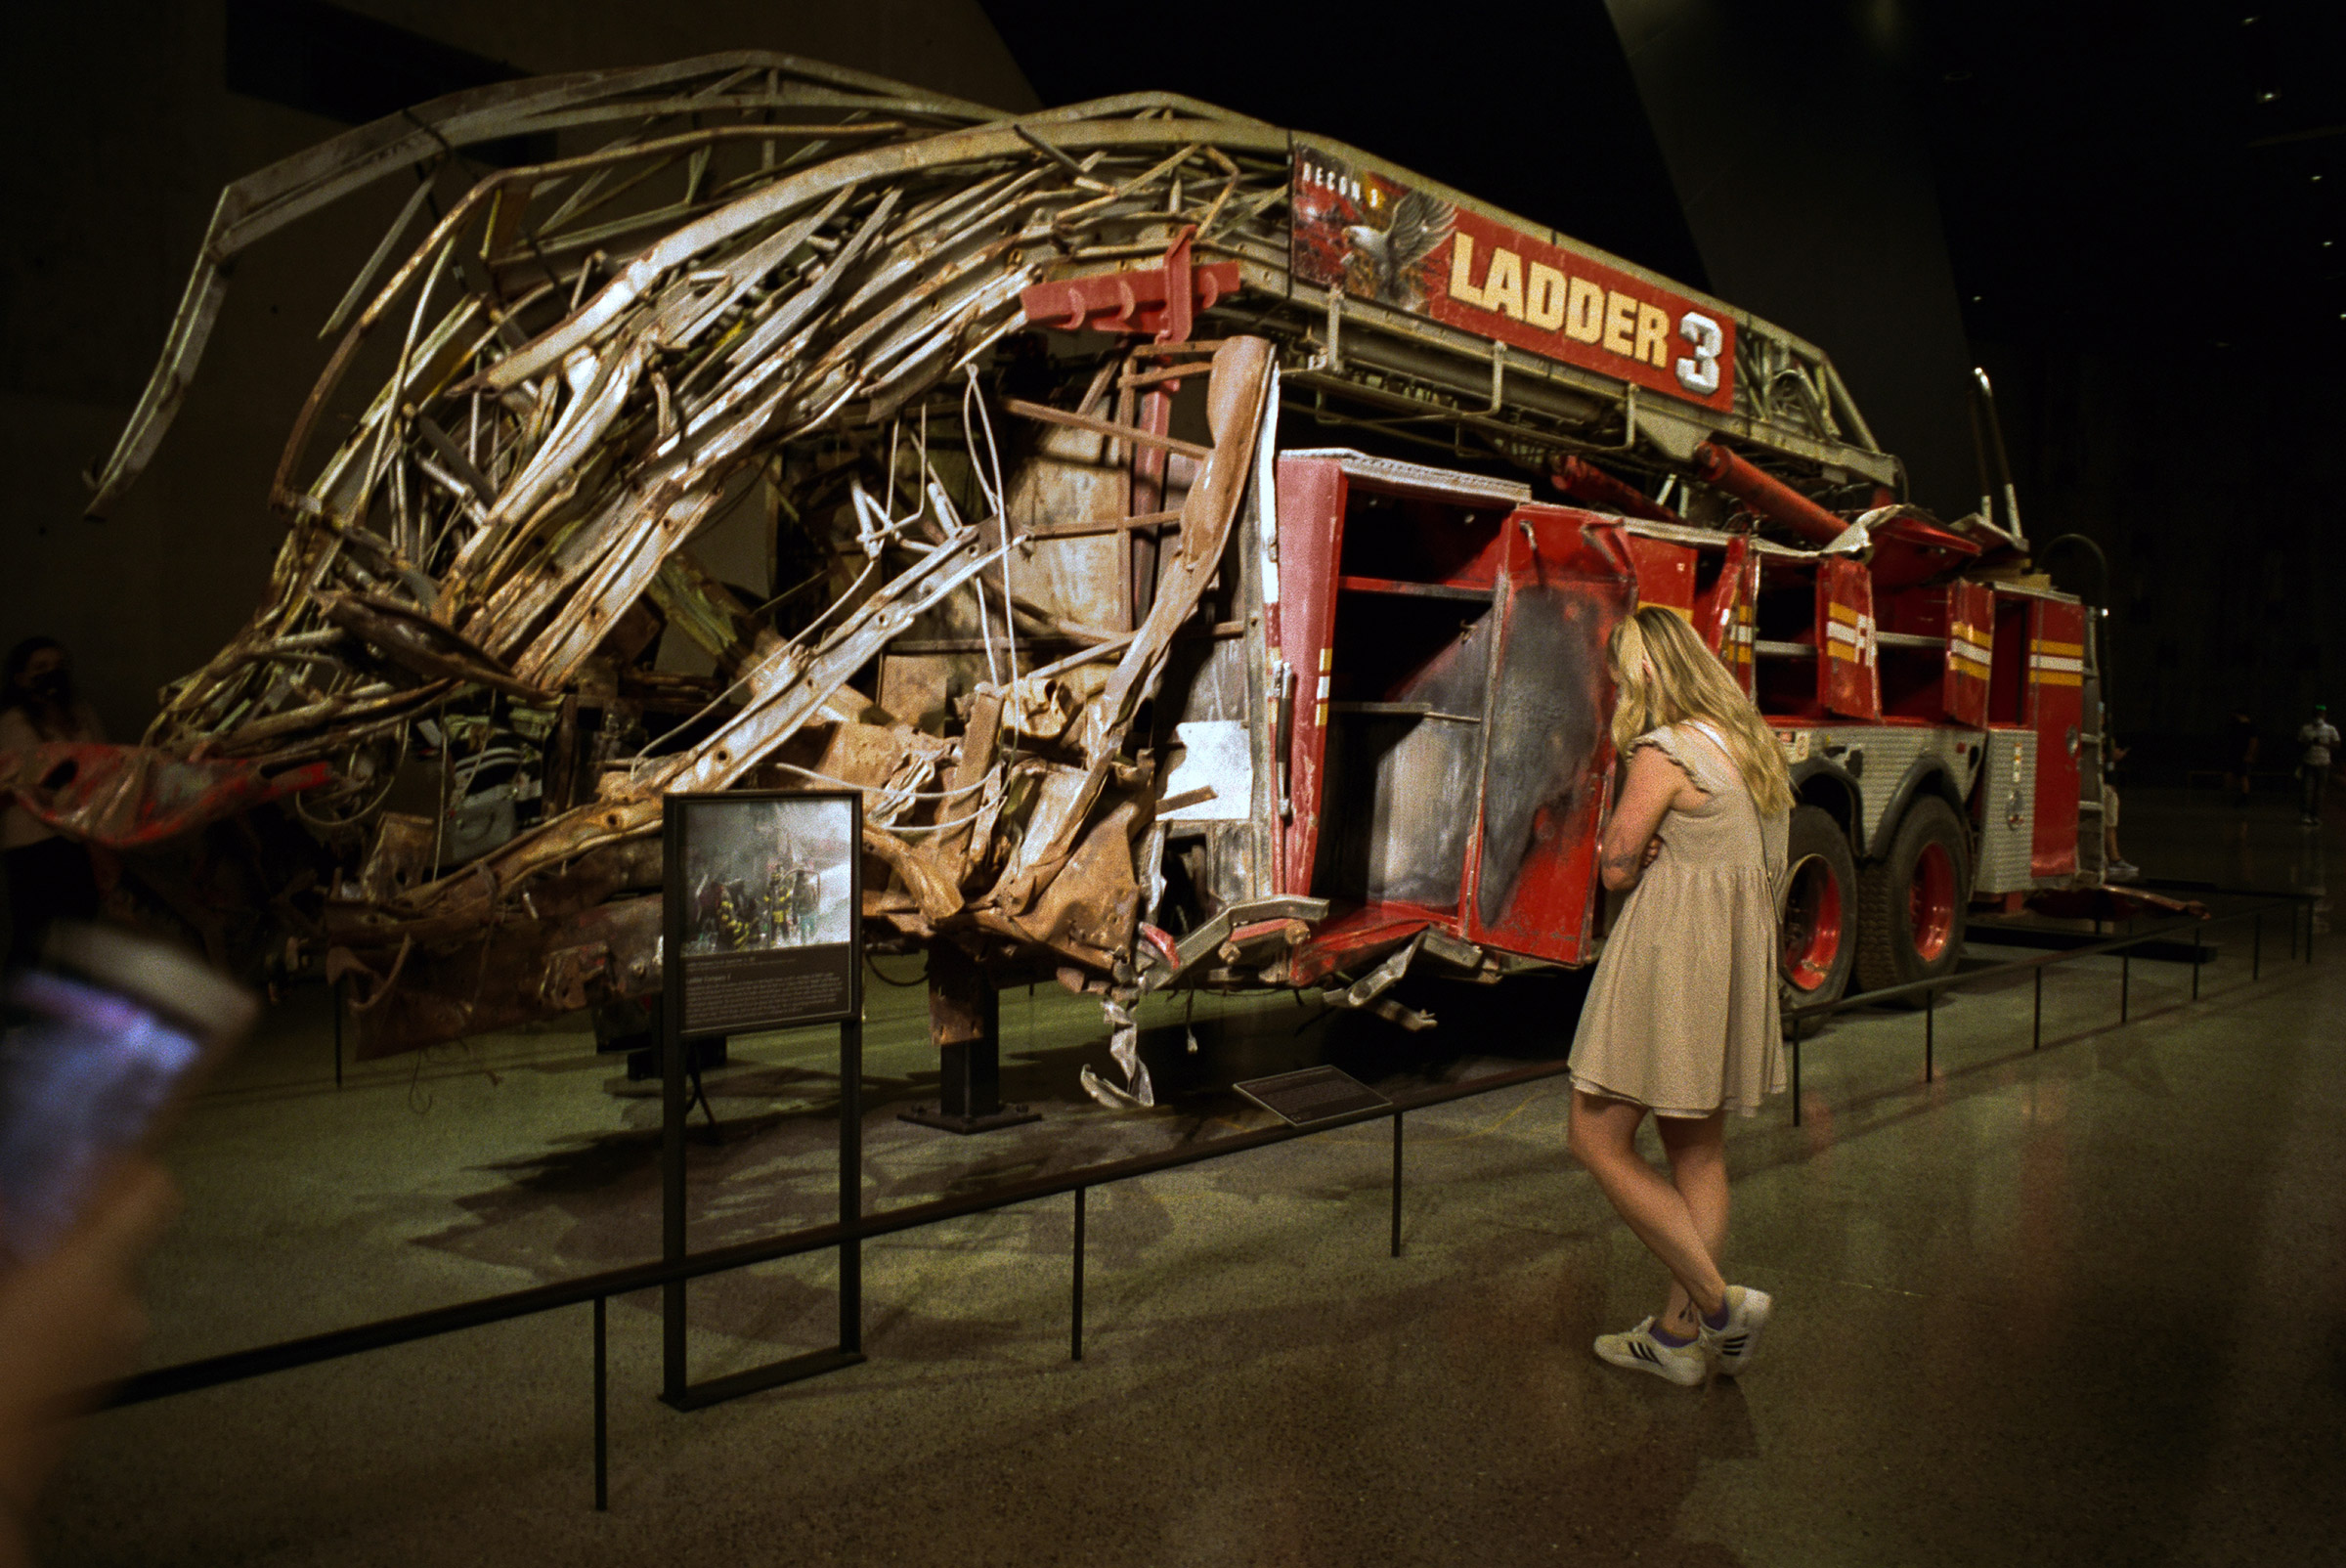 A mangled firetruck at the 9/11 Museum, Sept. 5, 2021.